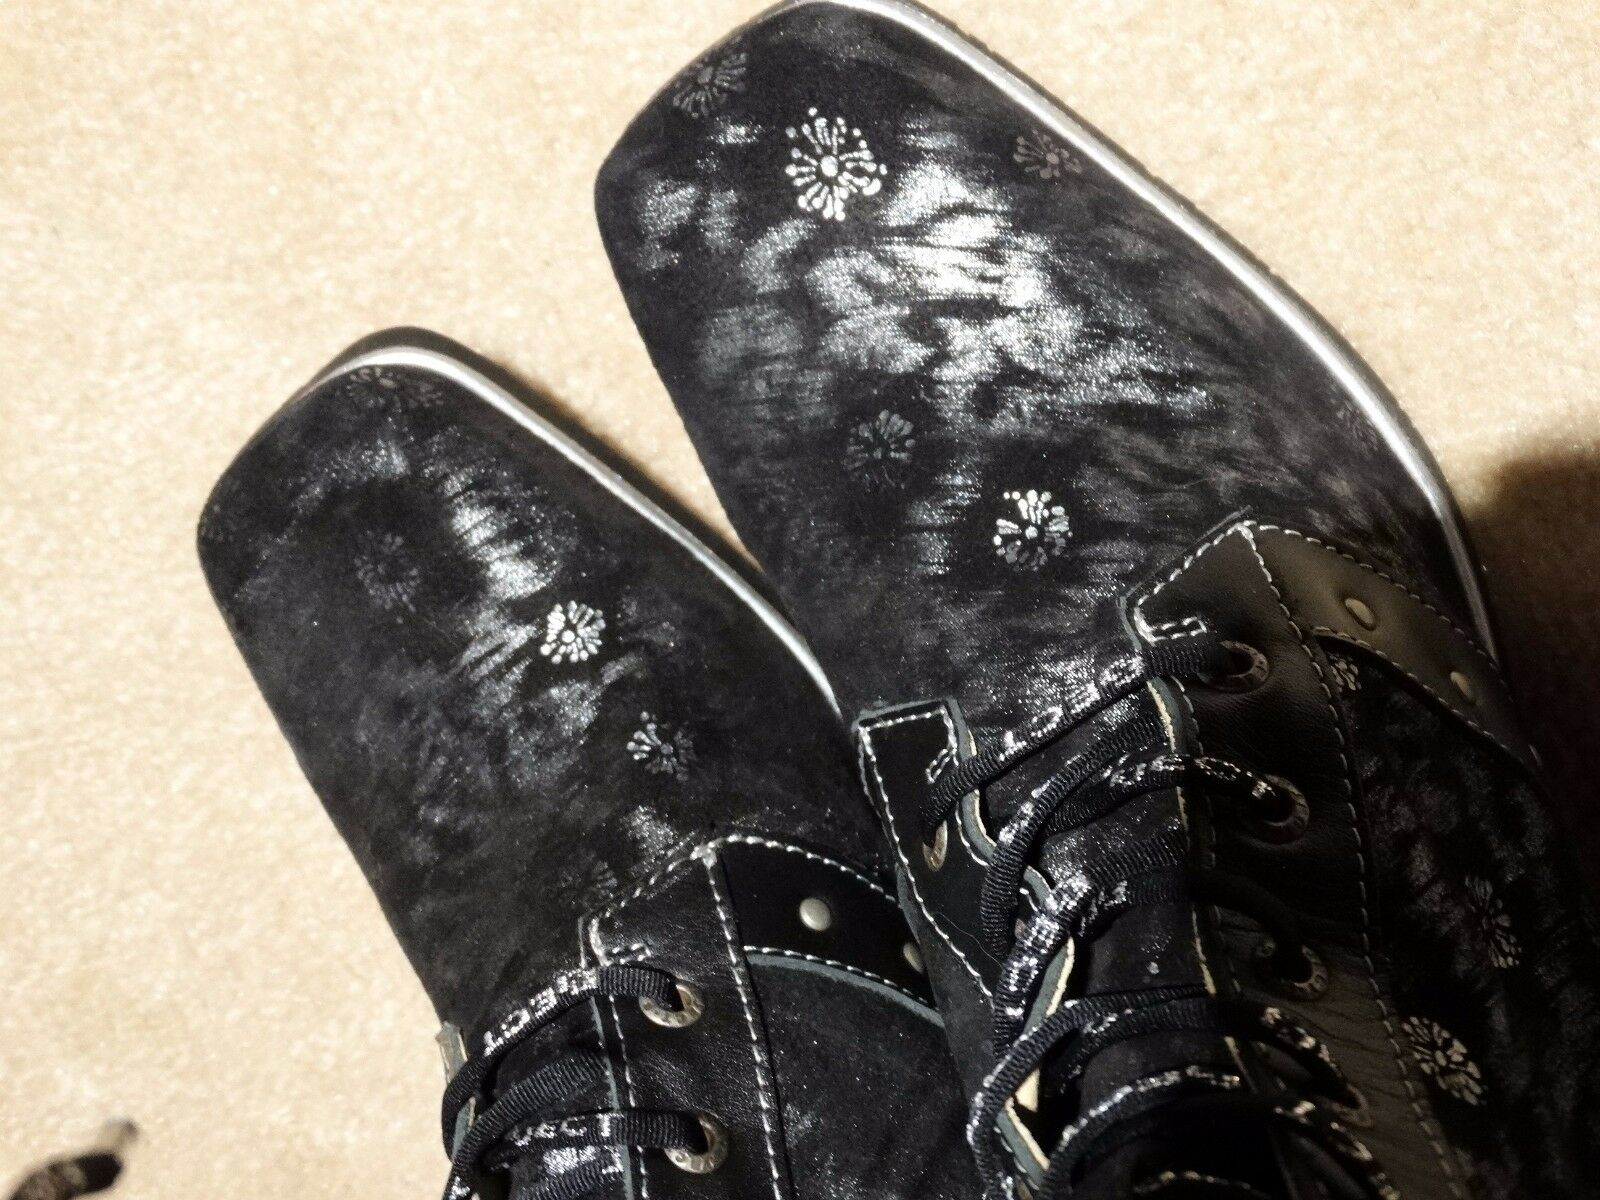 STUNNING STUNNING STUNNING EMBOSSED LEATHER BOOTS FROM EJECT 38 fdc7d3